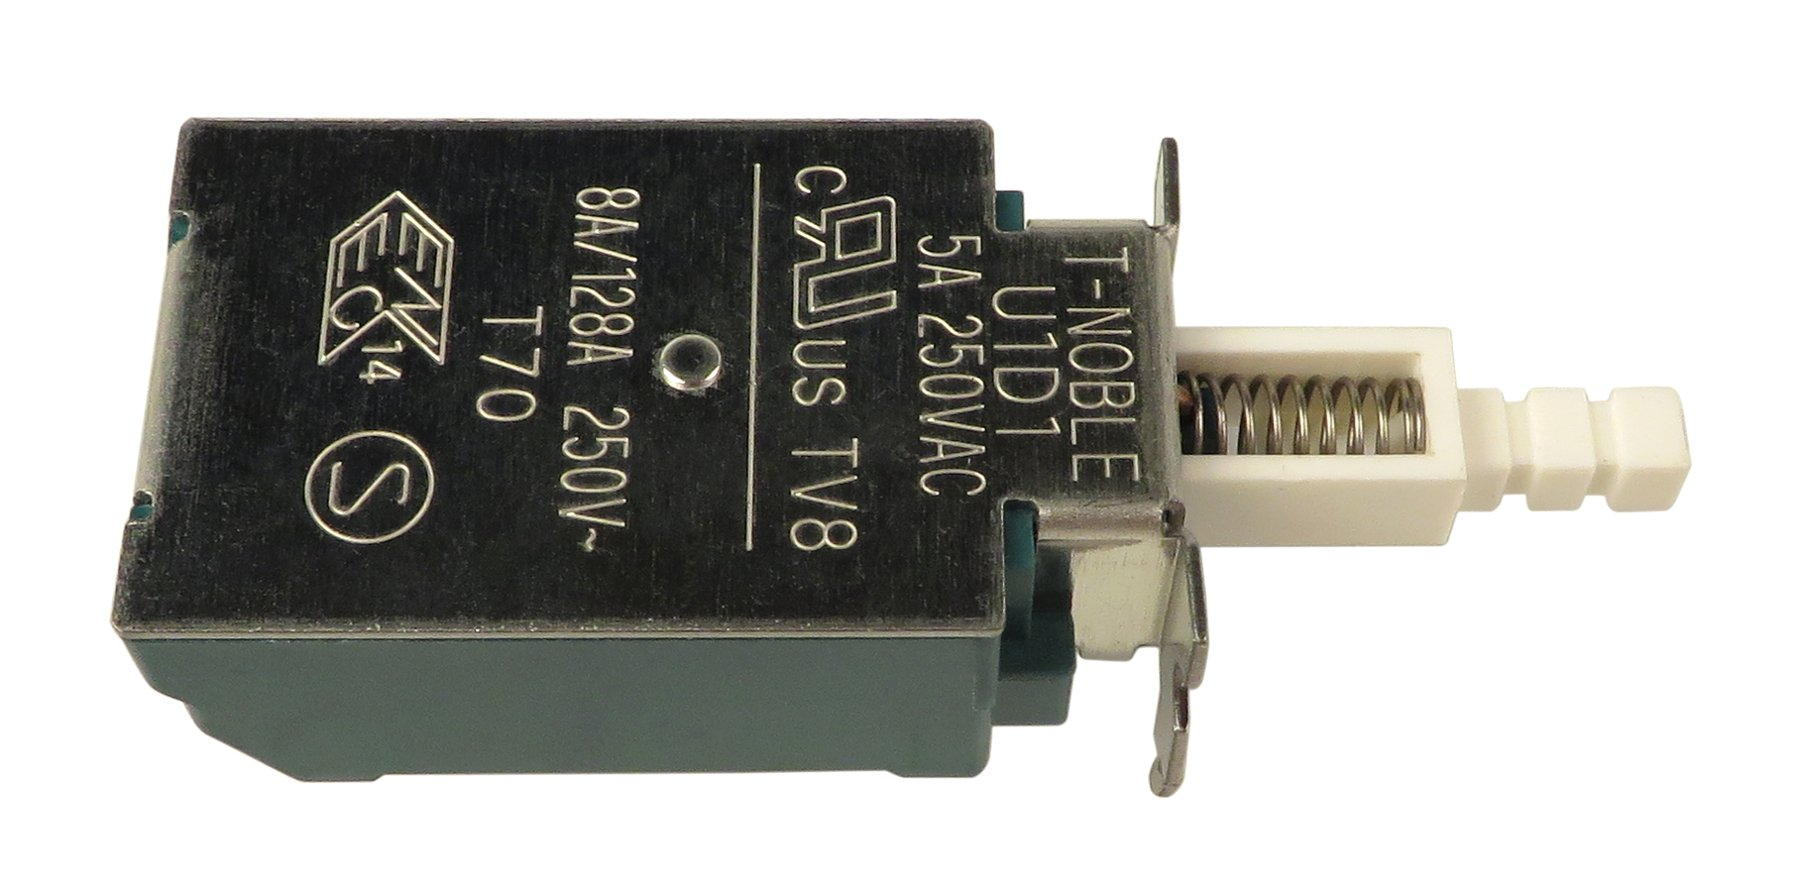 Power Switch for CTs 4200, CDi 2000, and XTi 2002